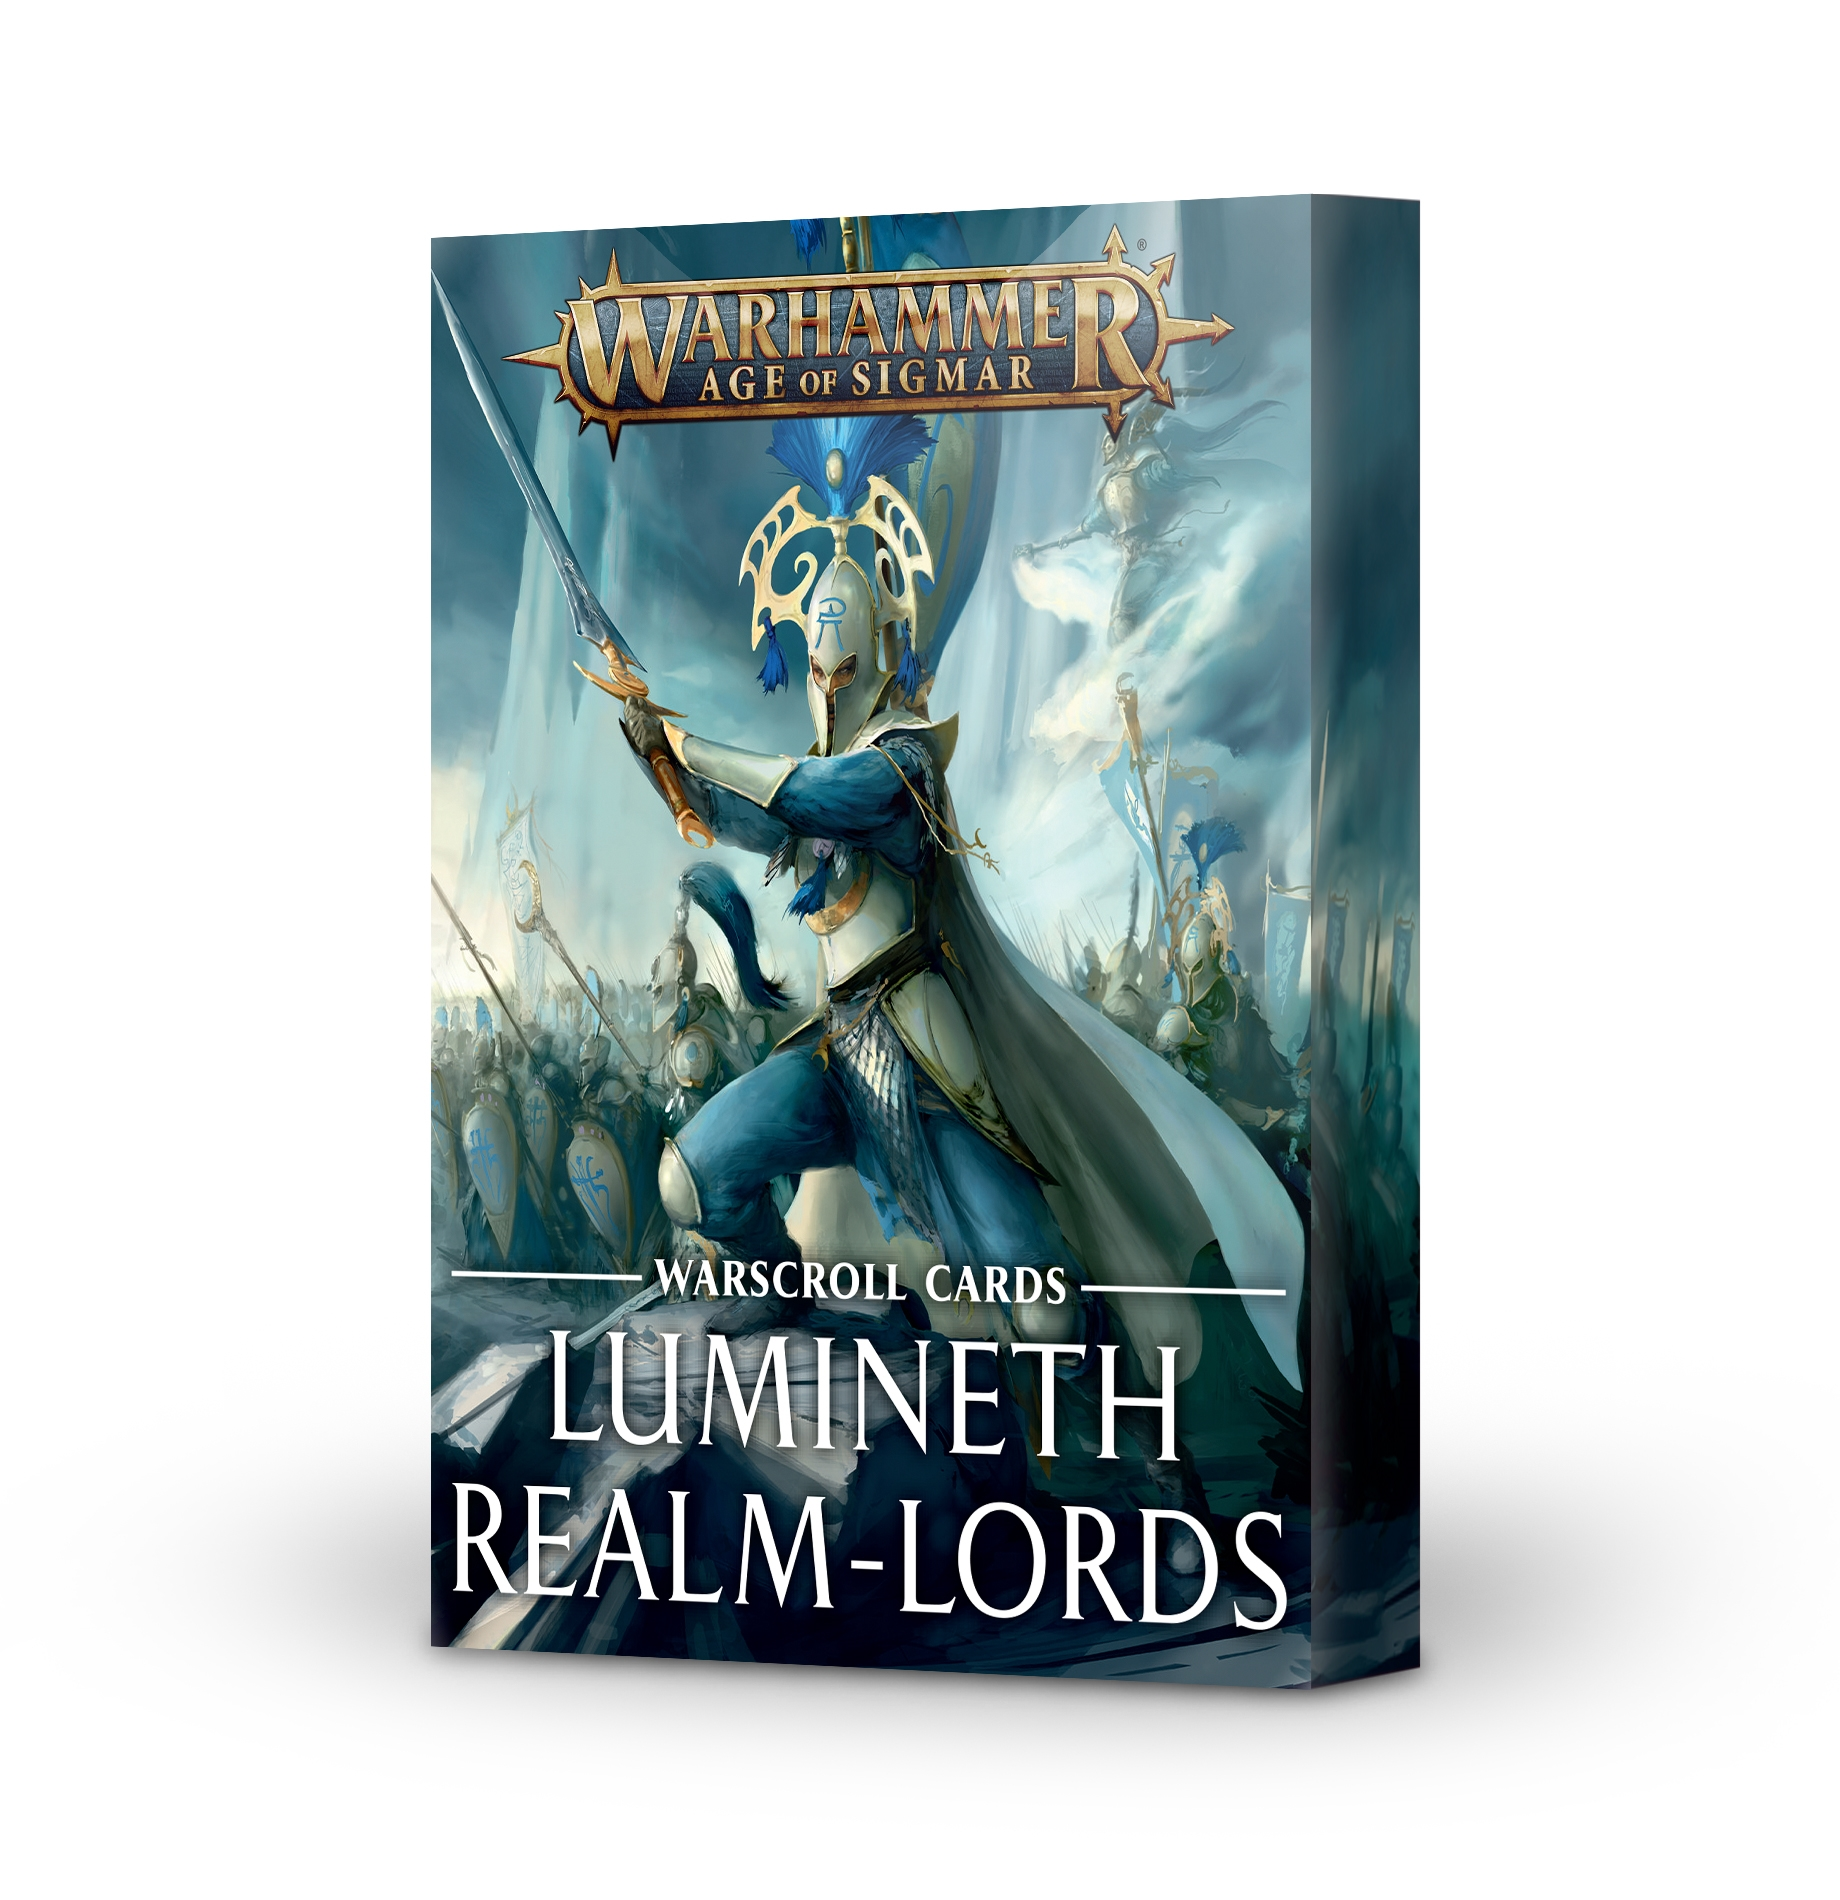 Warhammer Age of Sigmar: Warscroll Cards: Lumineth Realm-lords (Second Wave 2021)